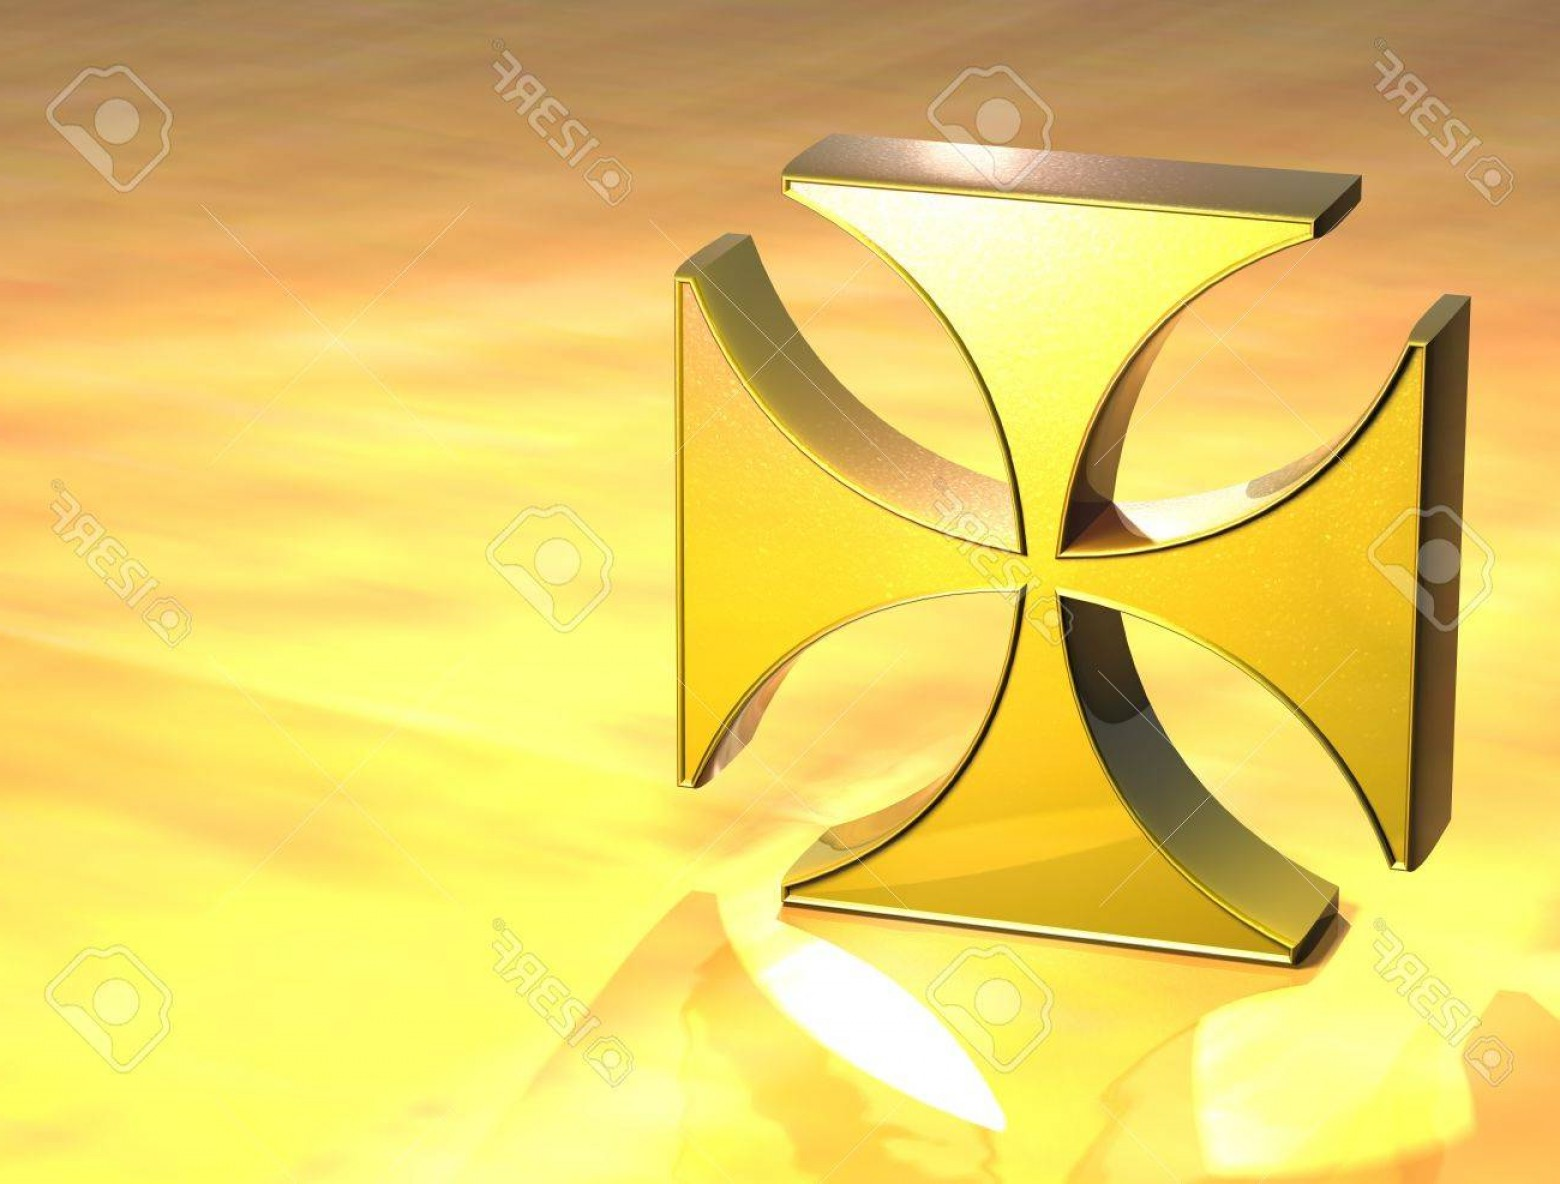 Maltese Cross Solid Vector: Photod Maltese Cross Gold Sign Over Yellow Background